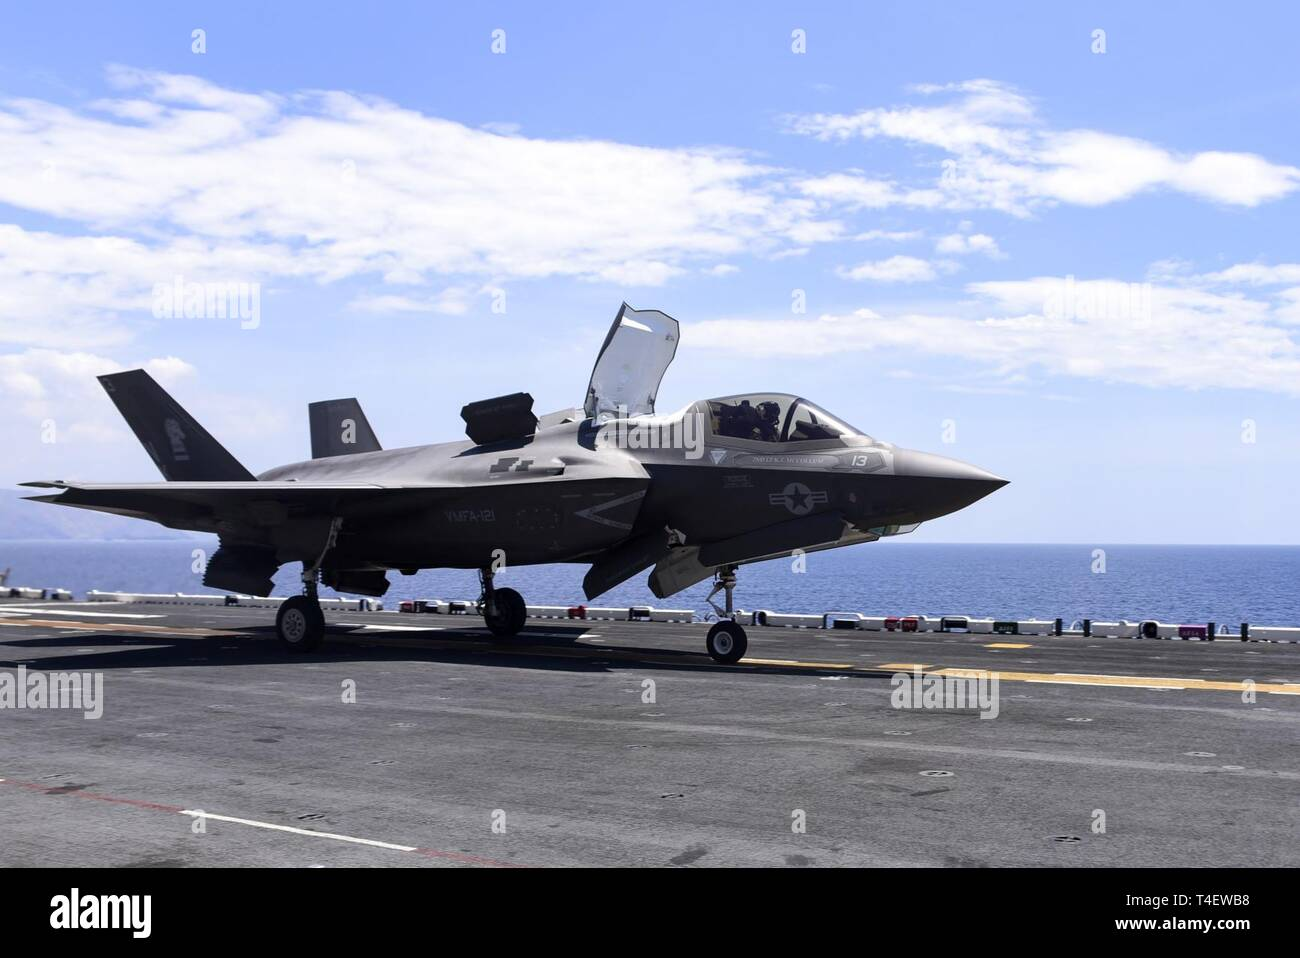 SOUTH CHINA SEA (April 3, 2019) – An F-35B Lightning II aircaft assigned to Marine Fighter Attack Squadron (VMFA) 121 takes off from the flight deck of the amphibious assauly ship USS Wasp (LHD 1) to operate in international airspace off the coast of the Philippines in support of Exercise Balikatan 2019. Exercise Balikatan, in its 35th iteration, is an annual U.S., Philippine military training exercise focused on a variety of missions, including humanitarian assistance and disaster relief, counter-terrorism, and other combined military operations. - Stock Image